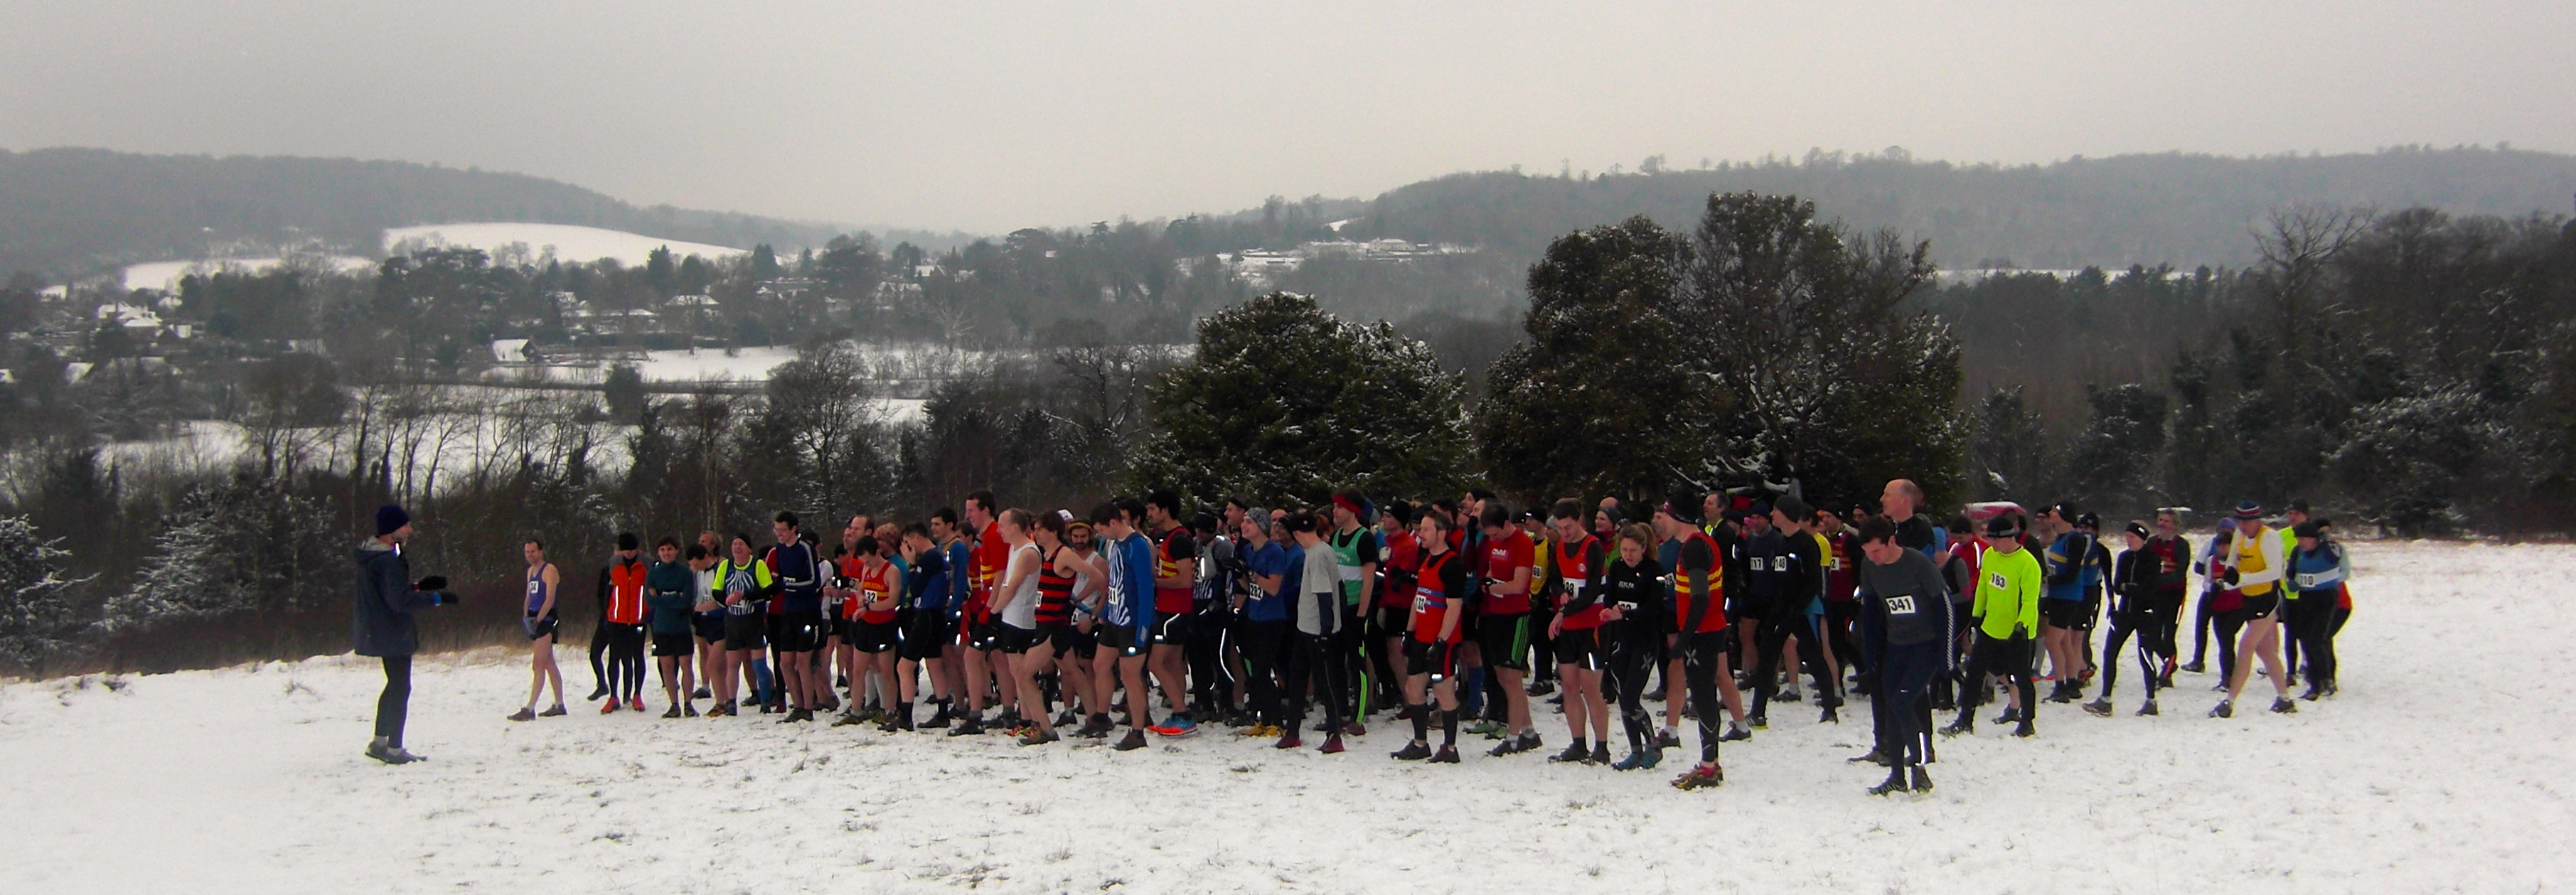 Runners gather on the snowy start line for the 32nd Box Hill Fell Race